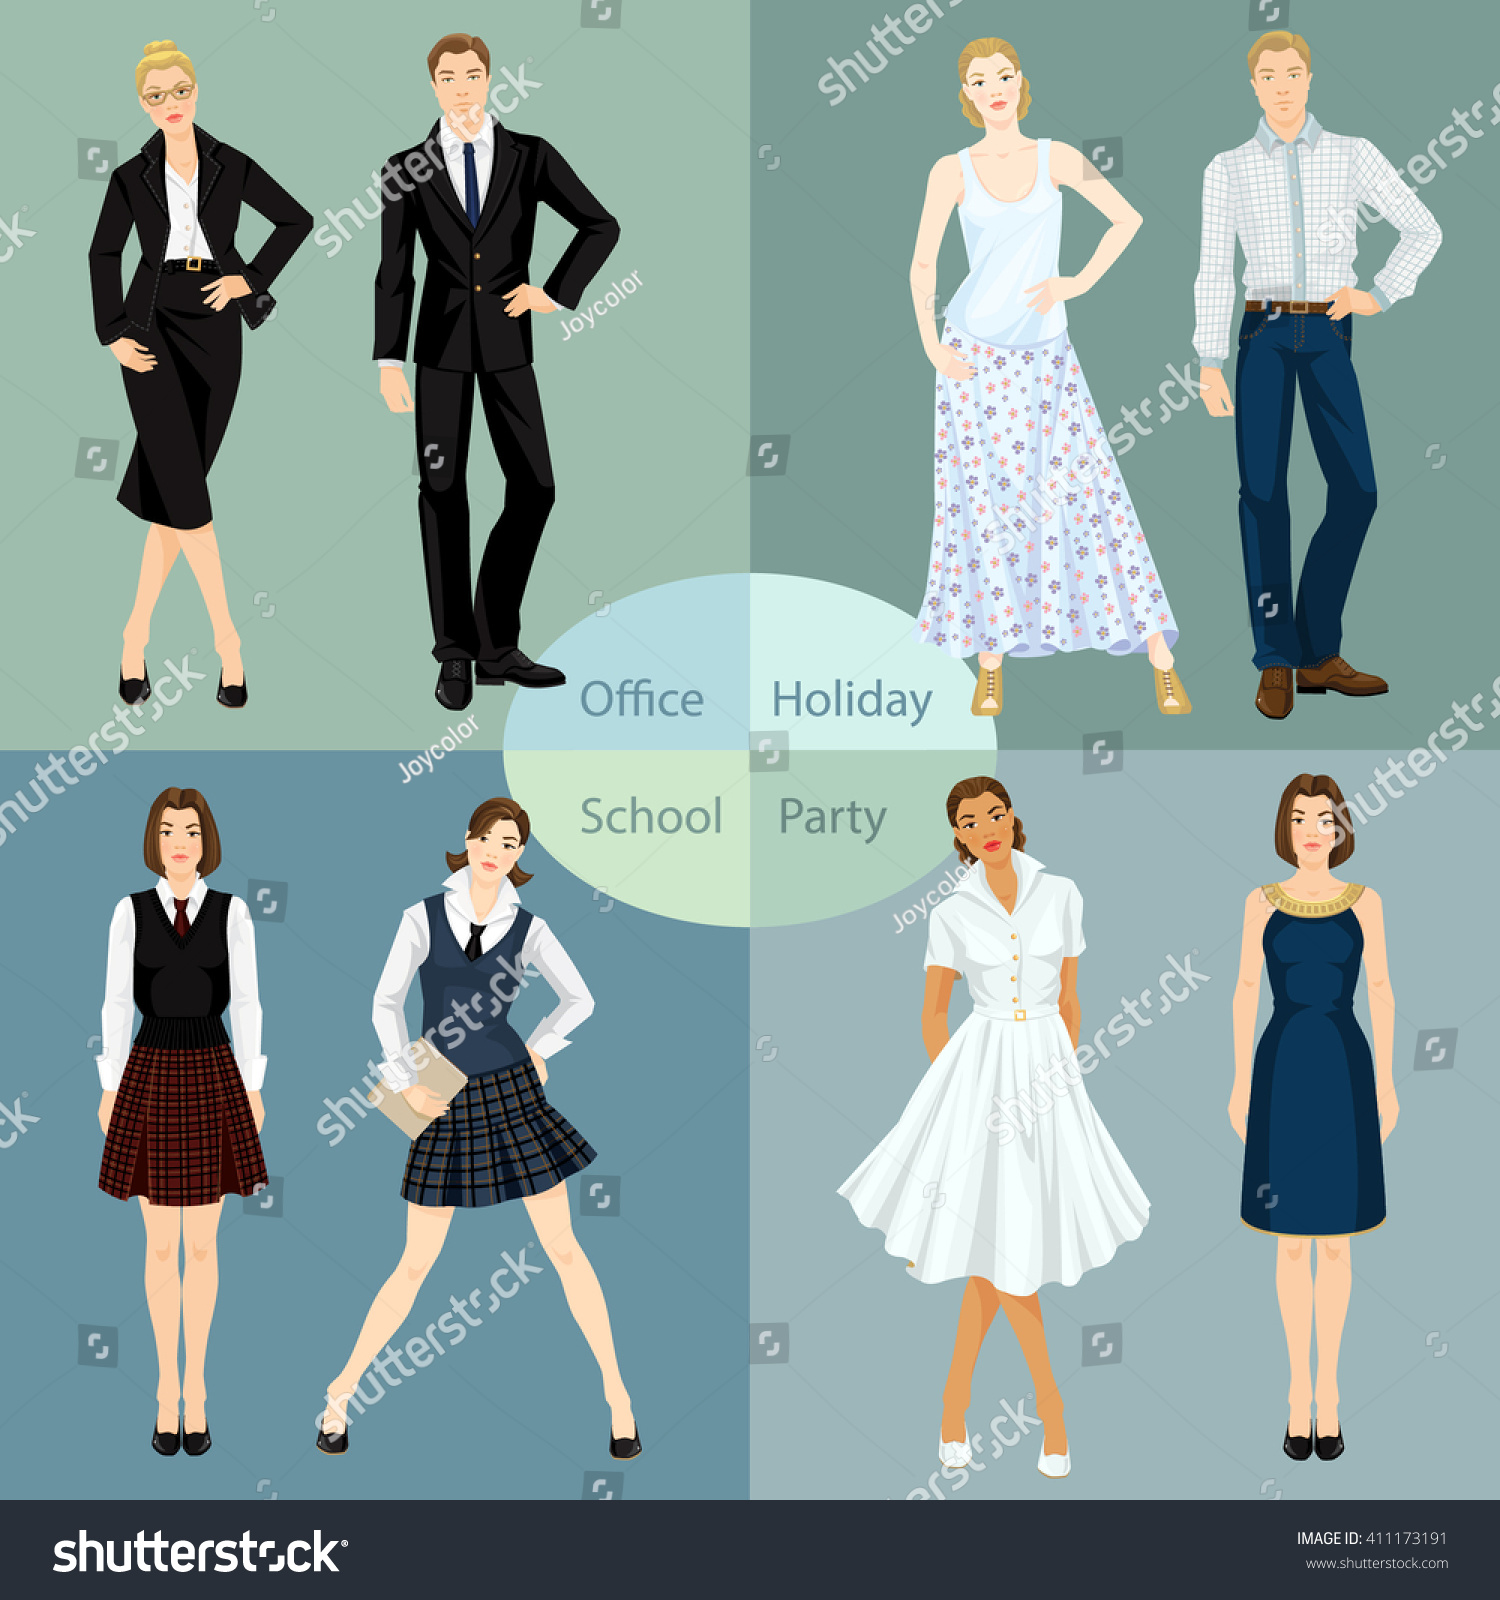 Vector Illustration Young People Clothes Office Stock Vector ...